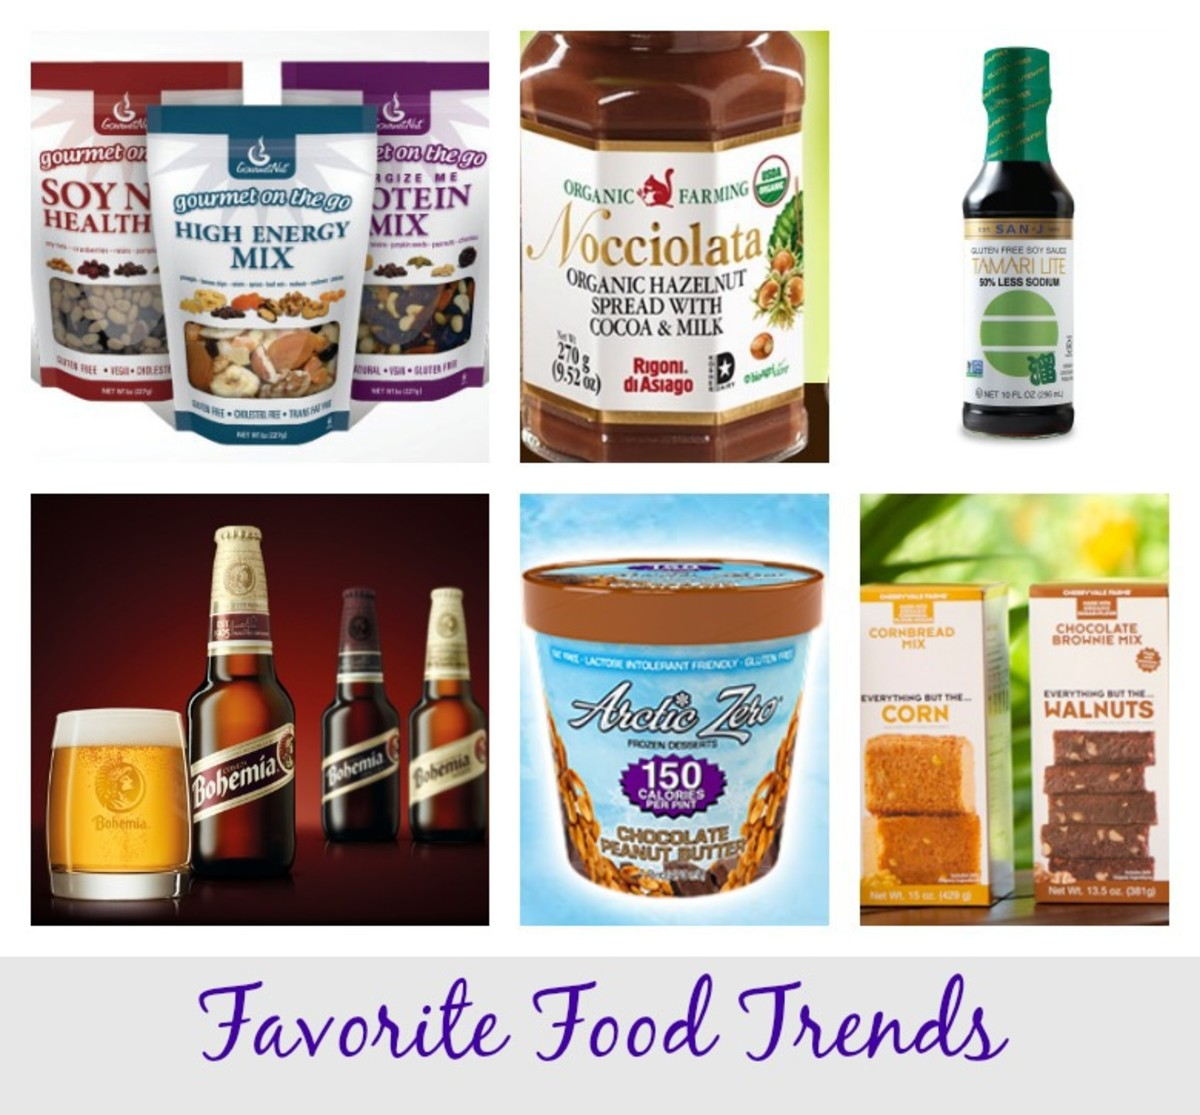 Favorite Food Trends